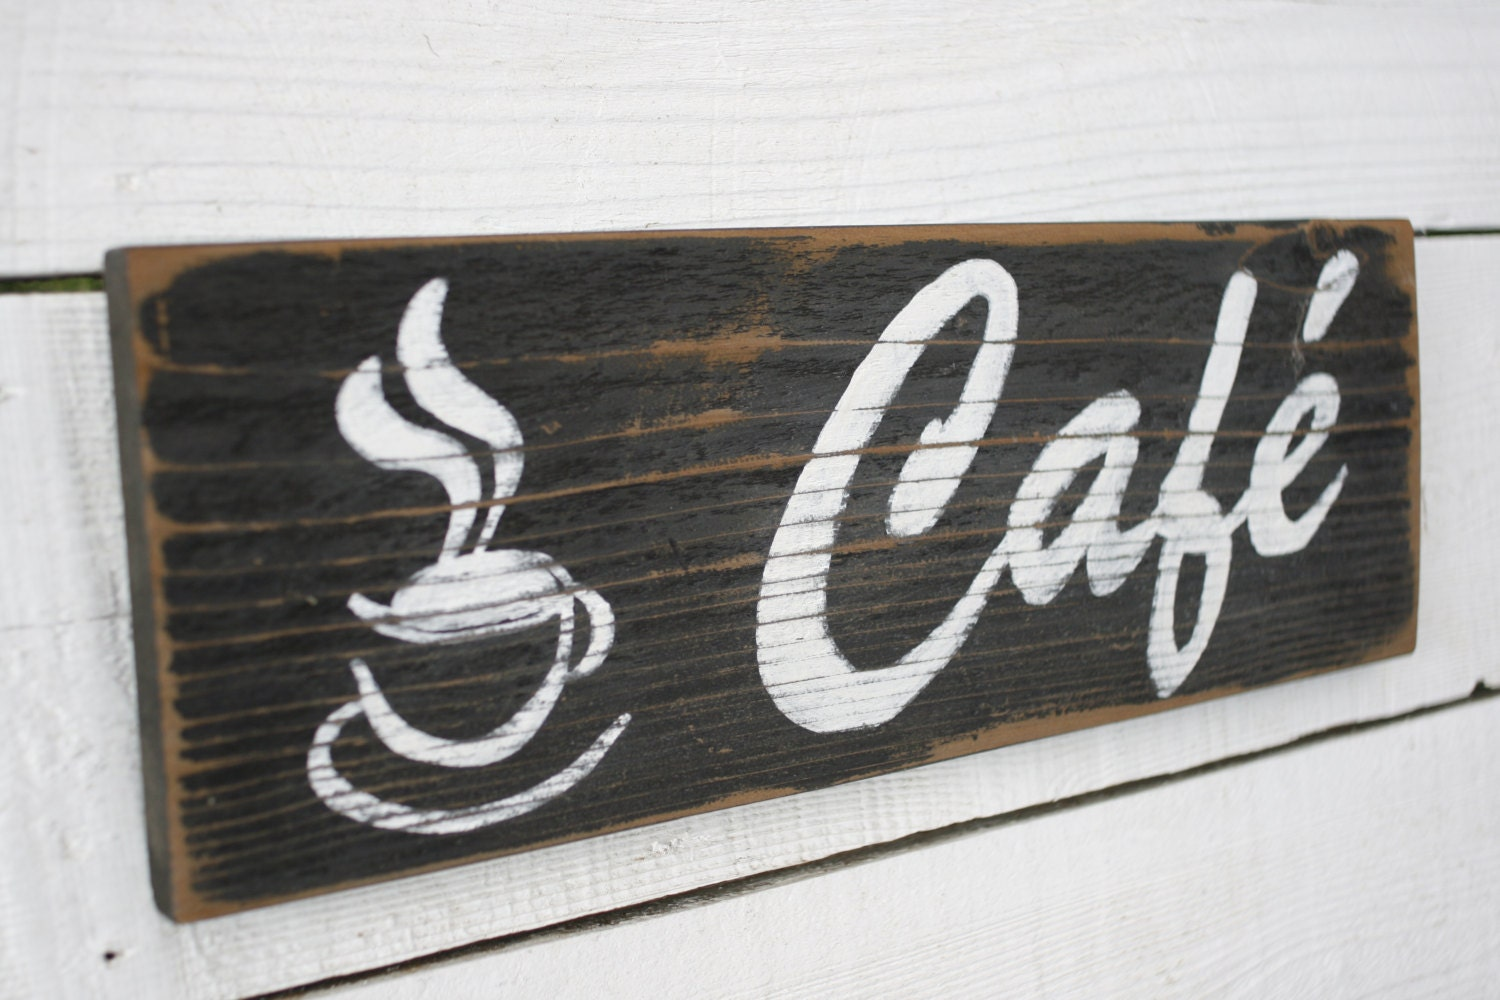 Coffee Cup Cafe Sign Gifts Under 25 Dollars Gift For Her